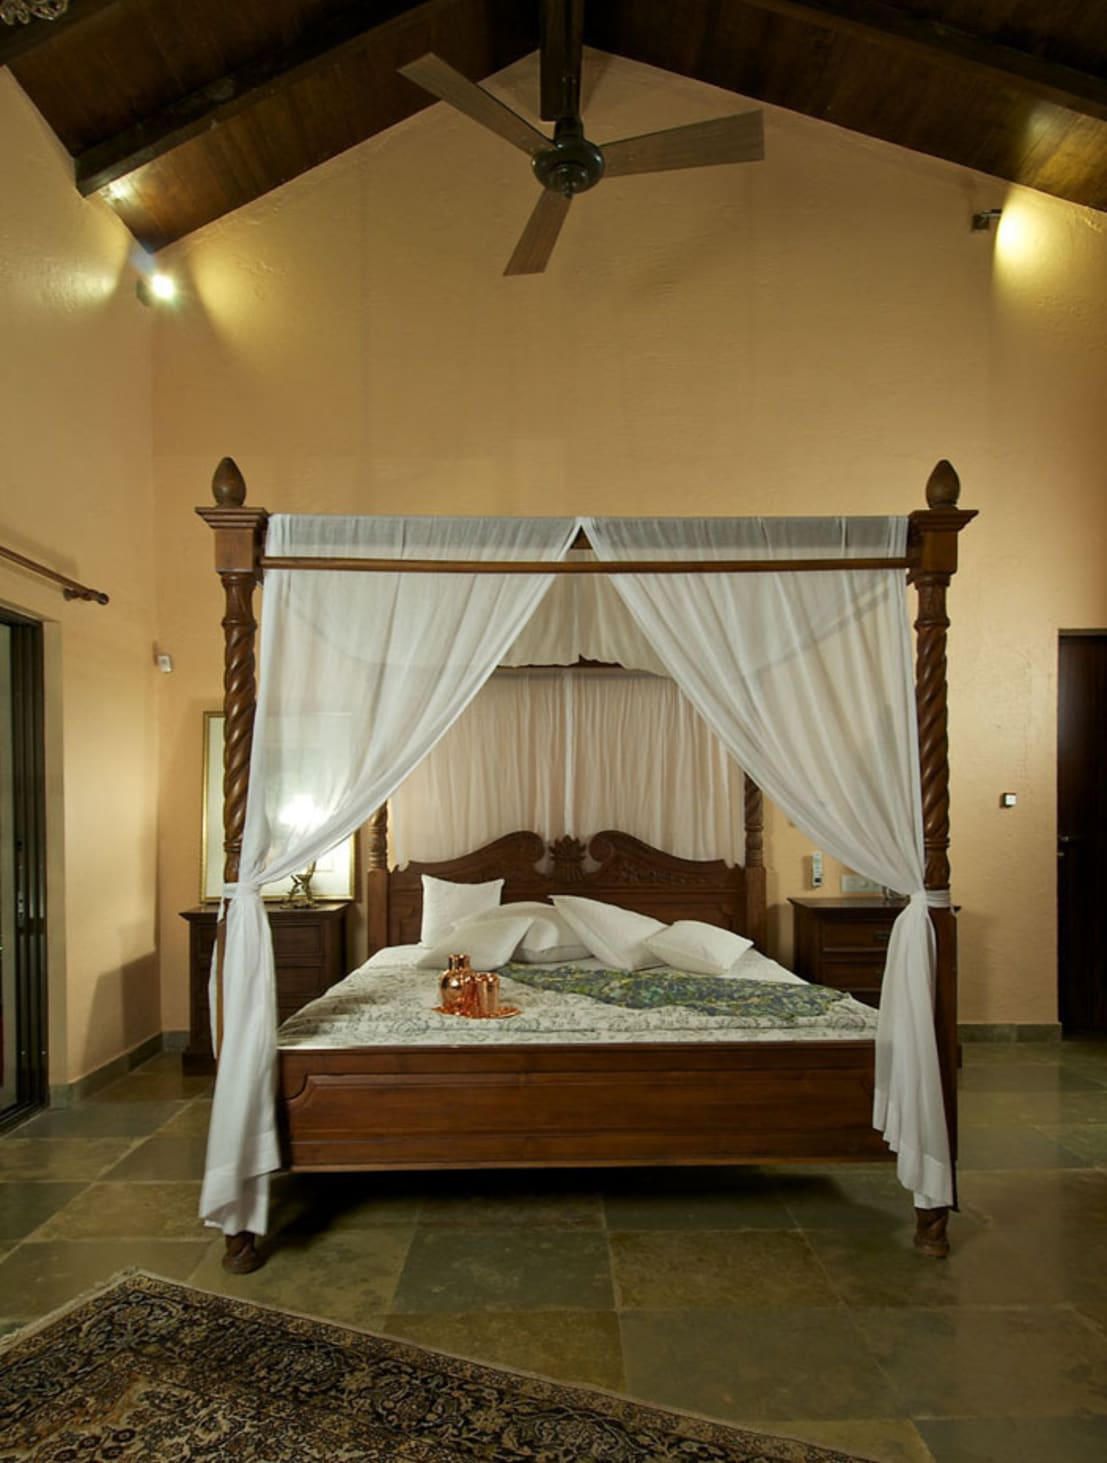 vaastu shastra tips for bedrooms